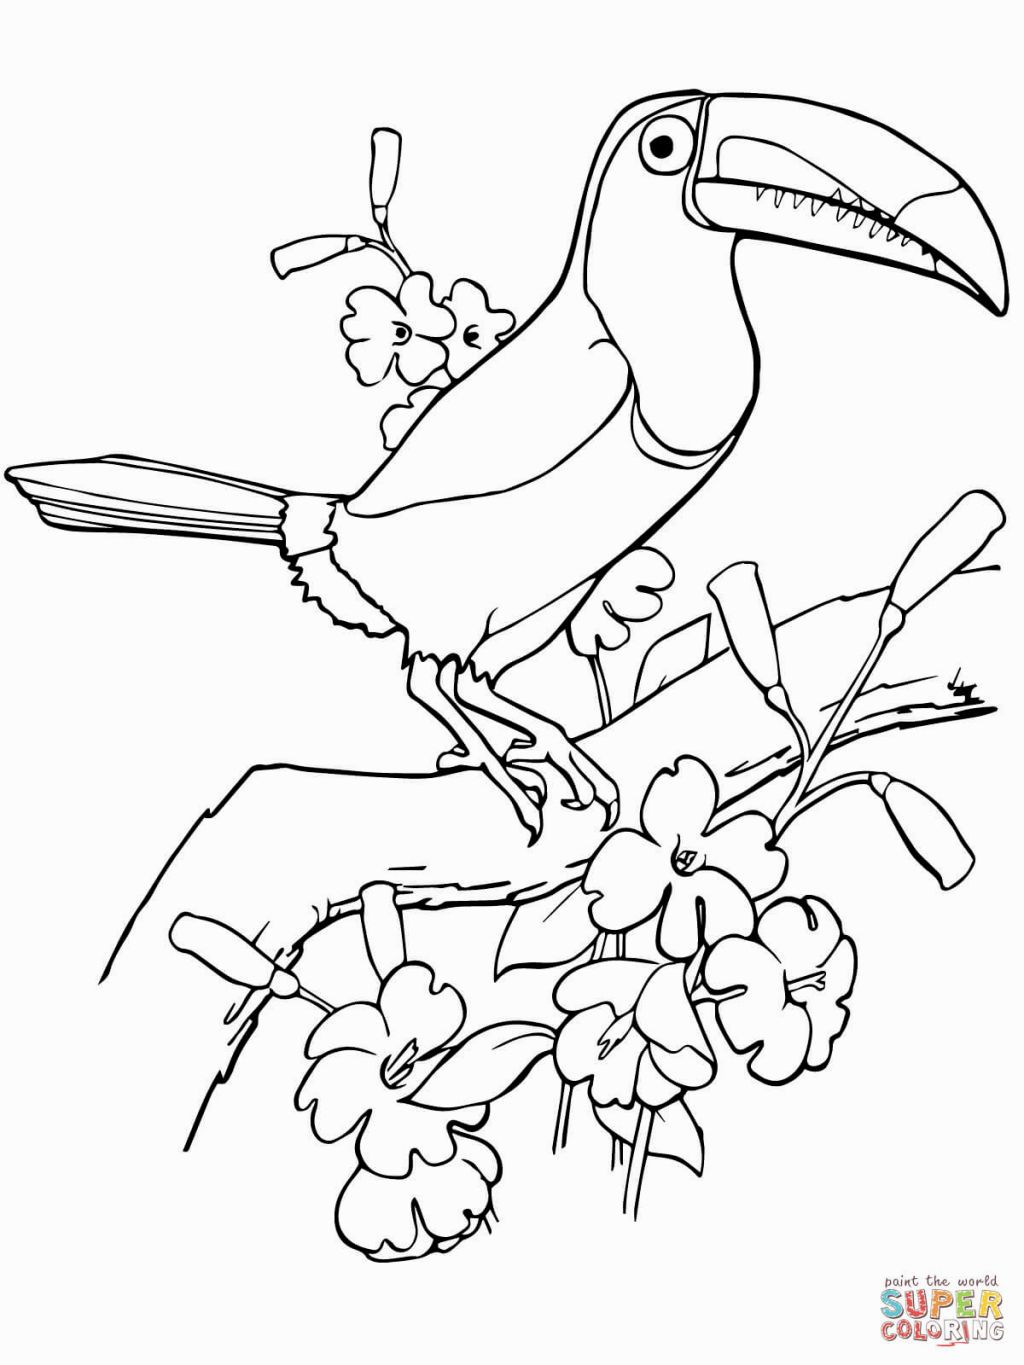 toucan coloring pages Toucan Coloring Page | Coloring Pages | Pinterest | Bird coloring  toucan coloring pages